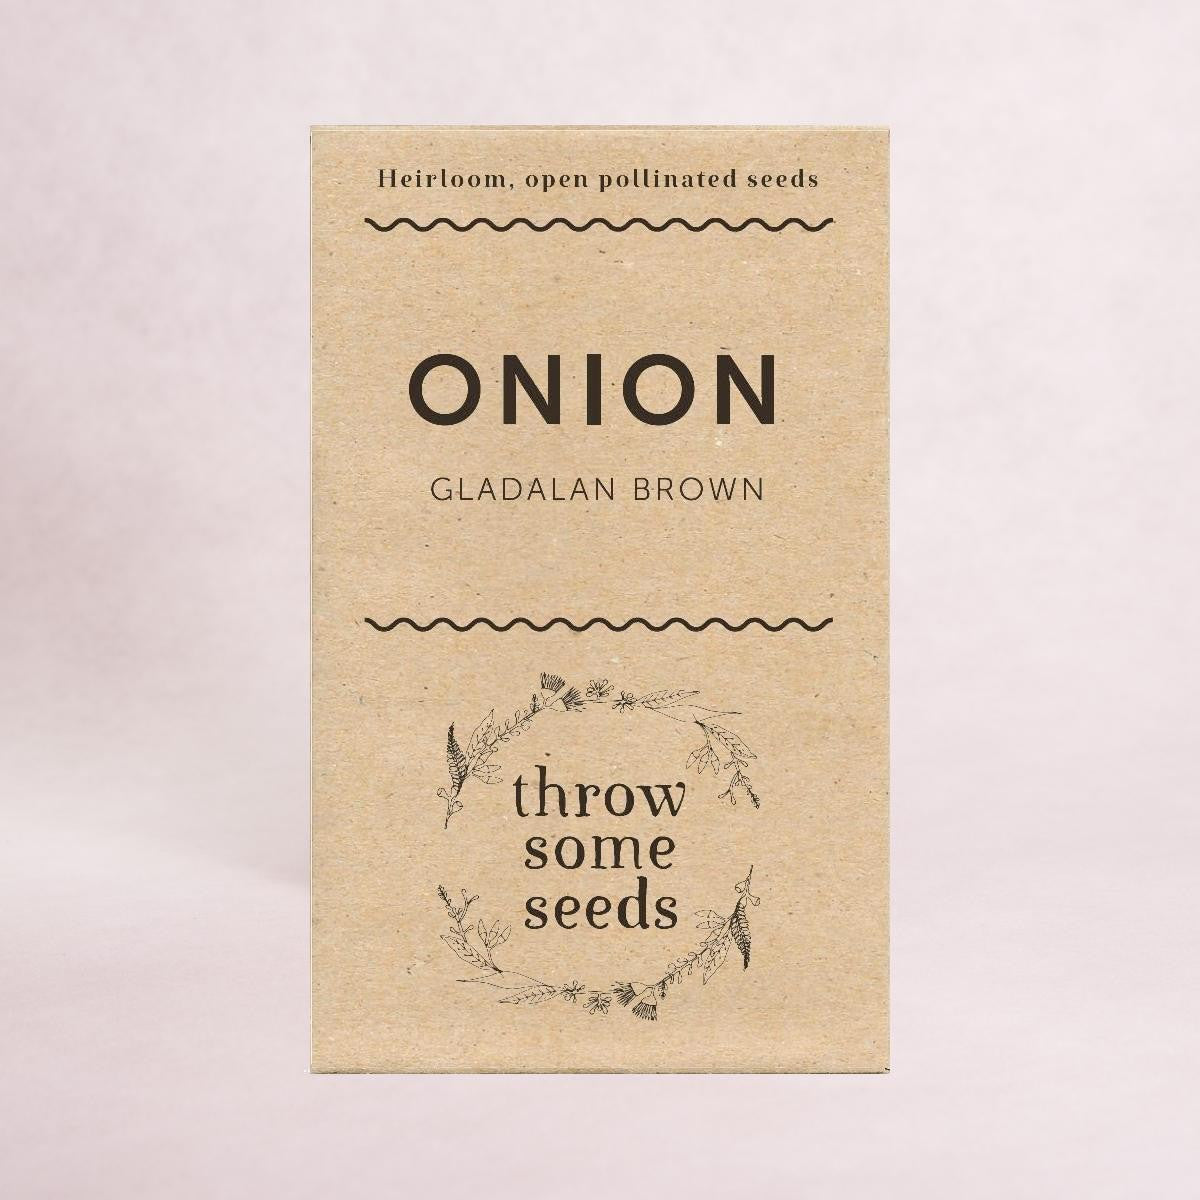 Onion (Gladalan Brown) Seeds - Seeds - Throw Some Seeds - Australian gardening gifts and eco products online!